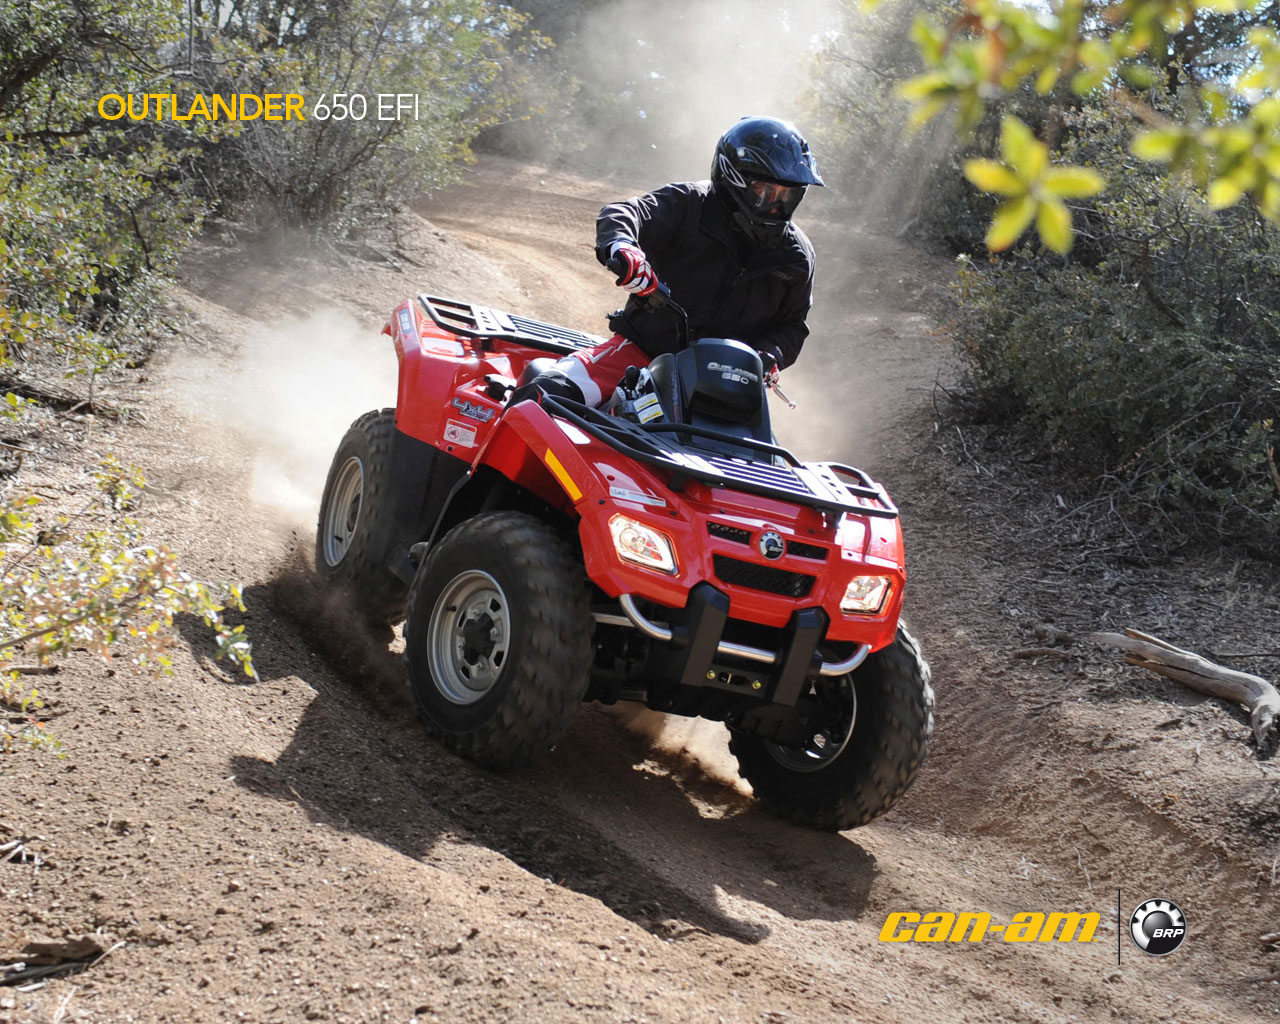 2009 can am outlander 650 efi. Black Bedroom Furniture Sets. Home Design Ideas